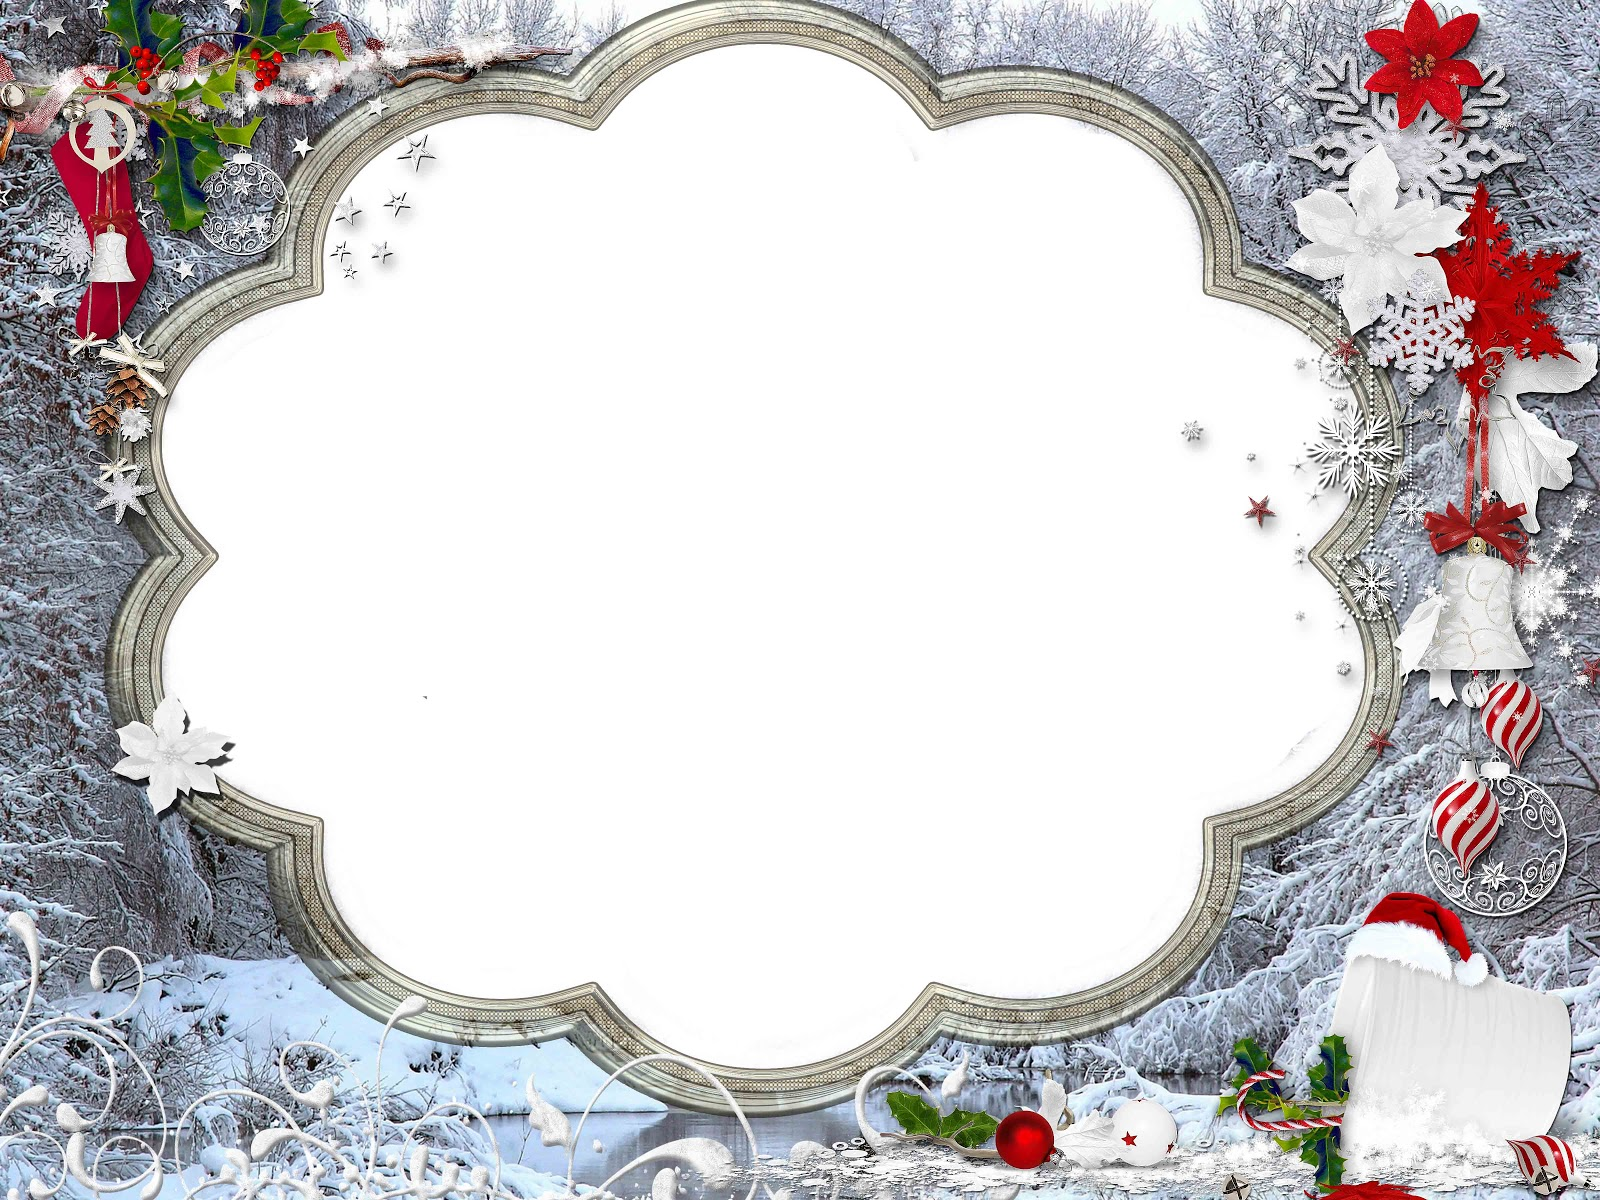 Christmas Frame With Flower Border Png image #47104